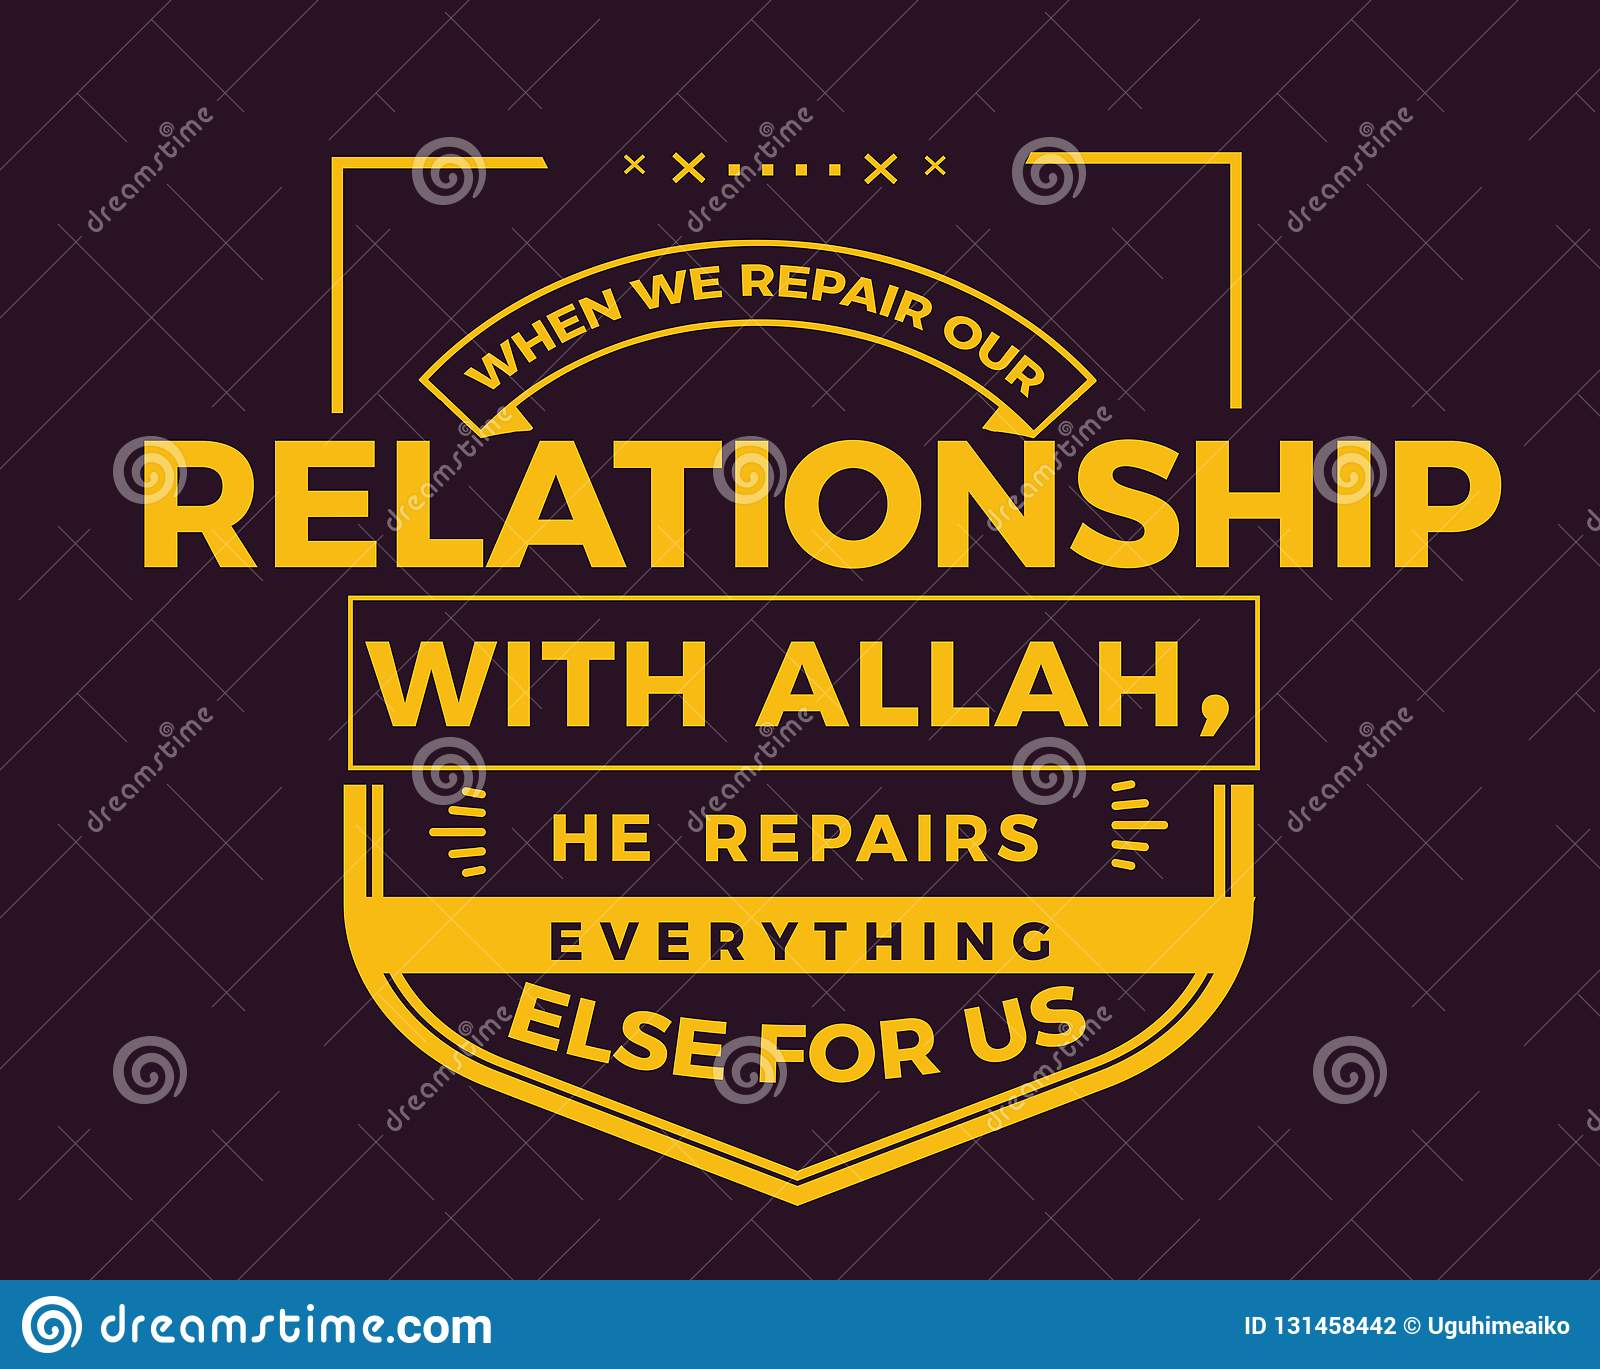 When We Repair Our Relationship With Allah, He Repairs